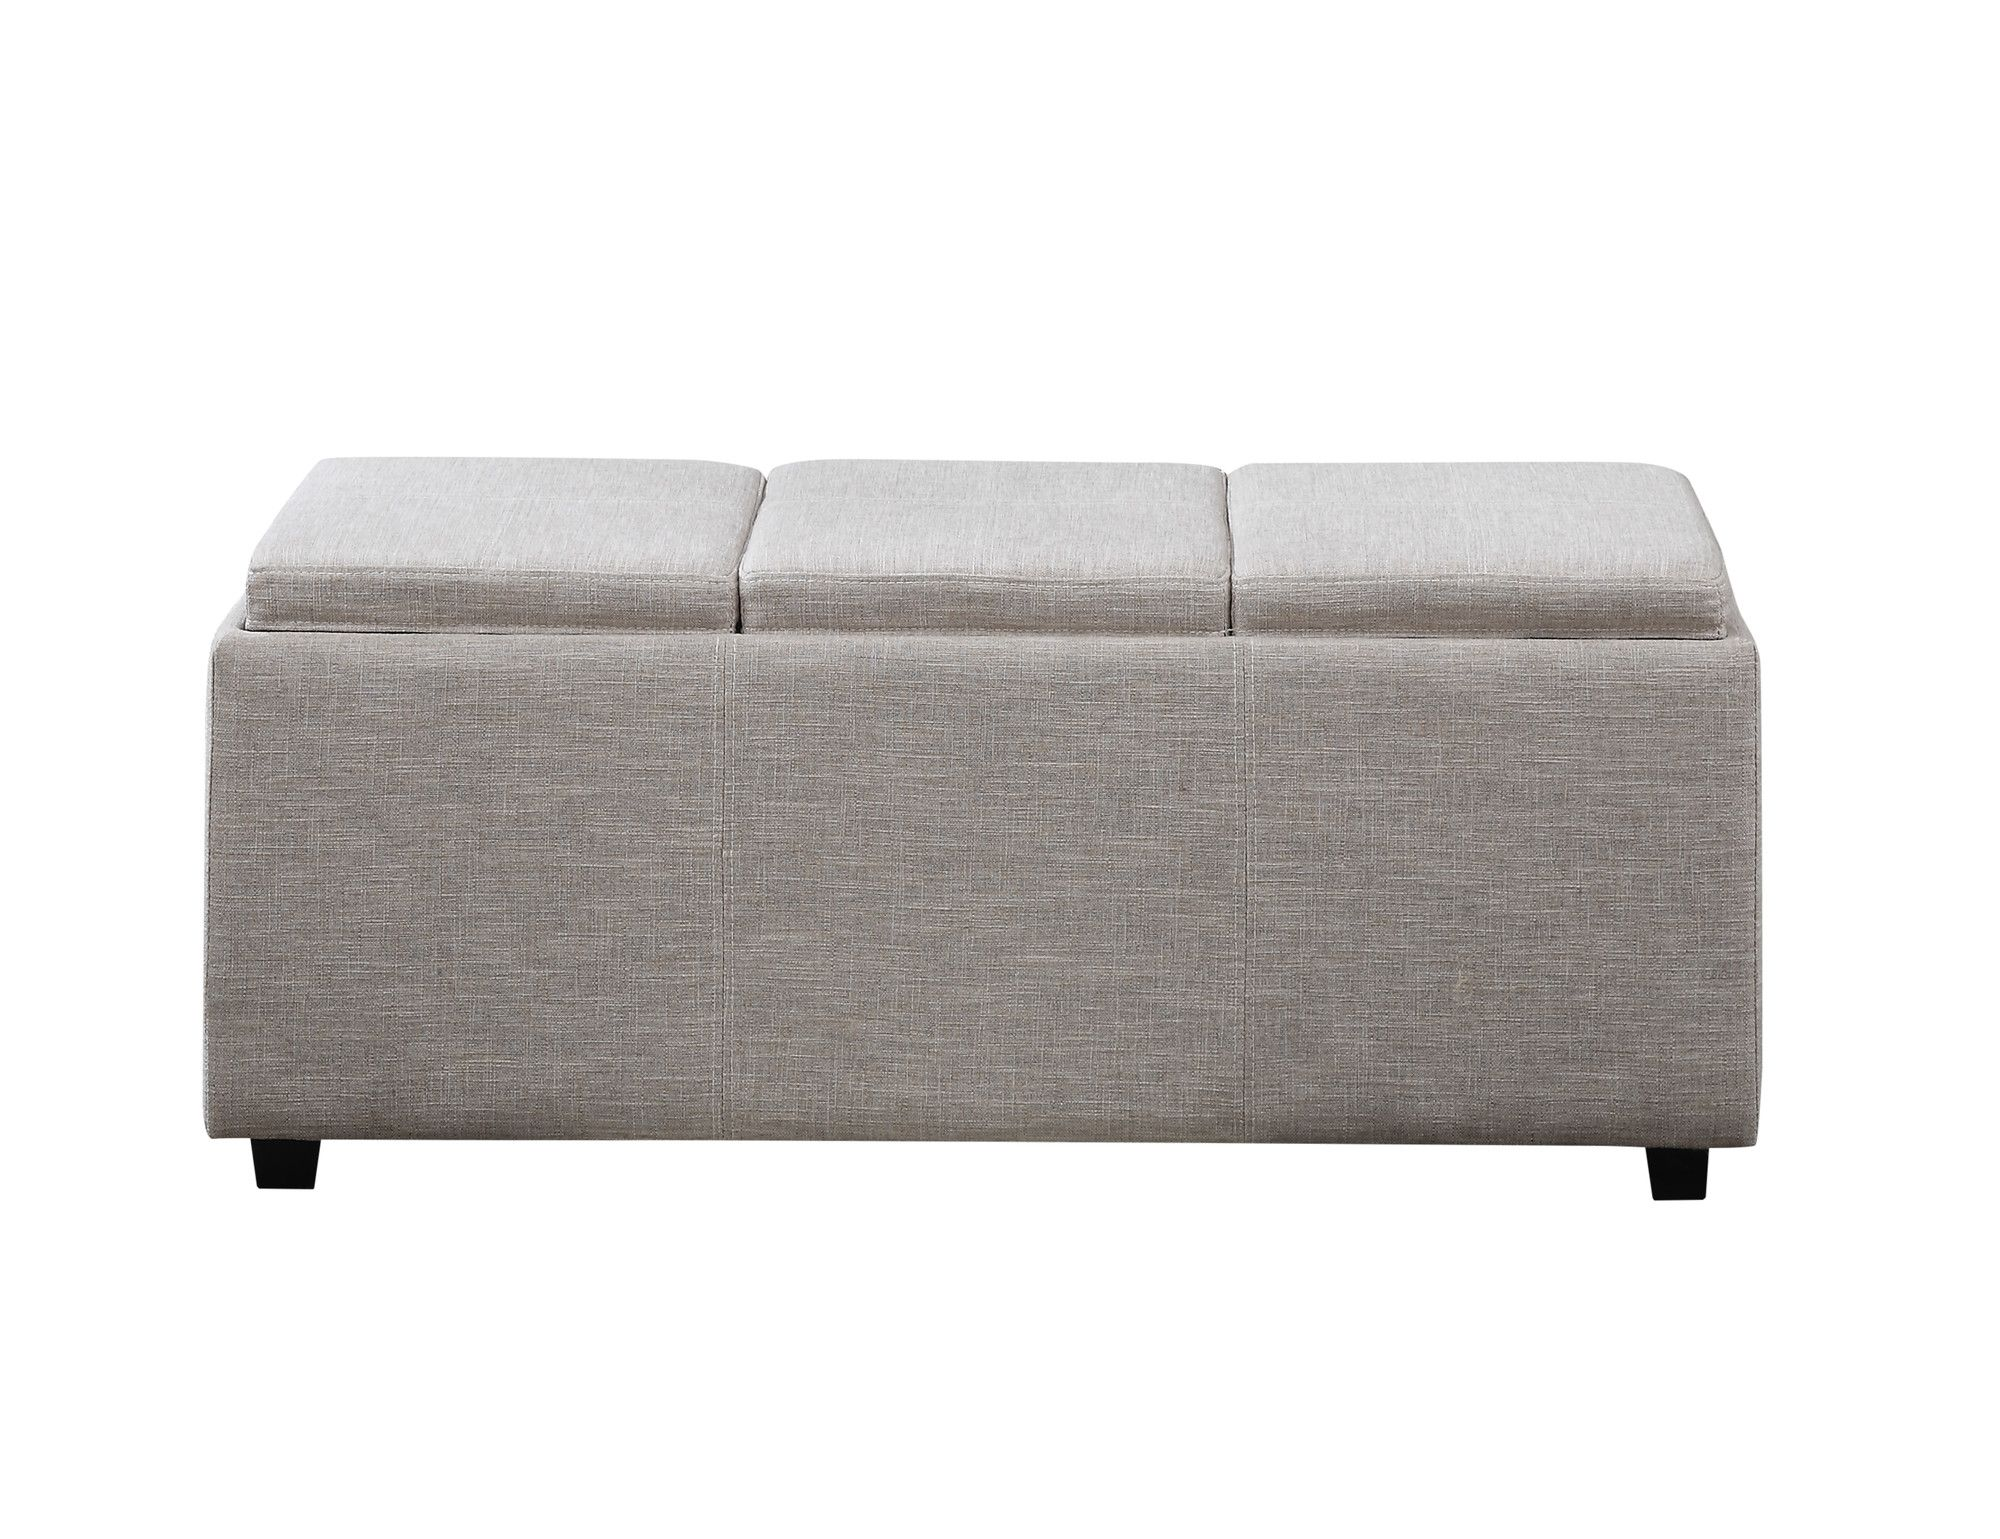 Avalon storage ottoman ottomans and products